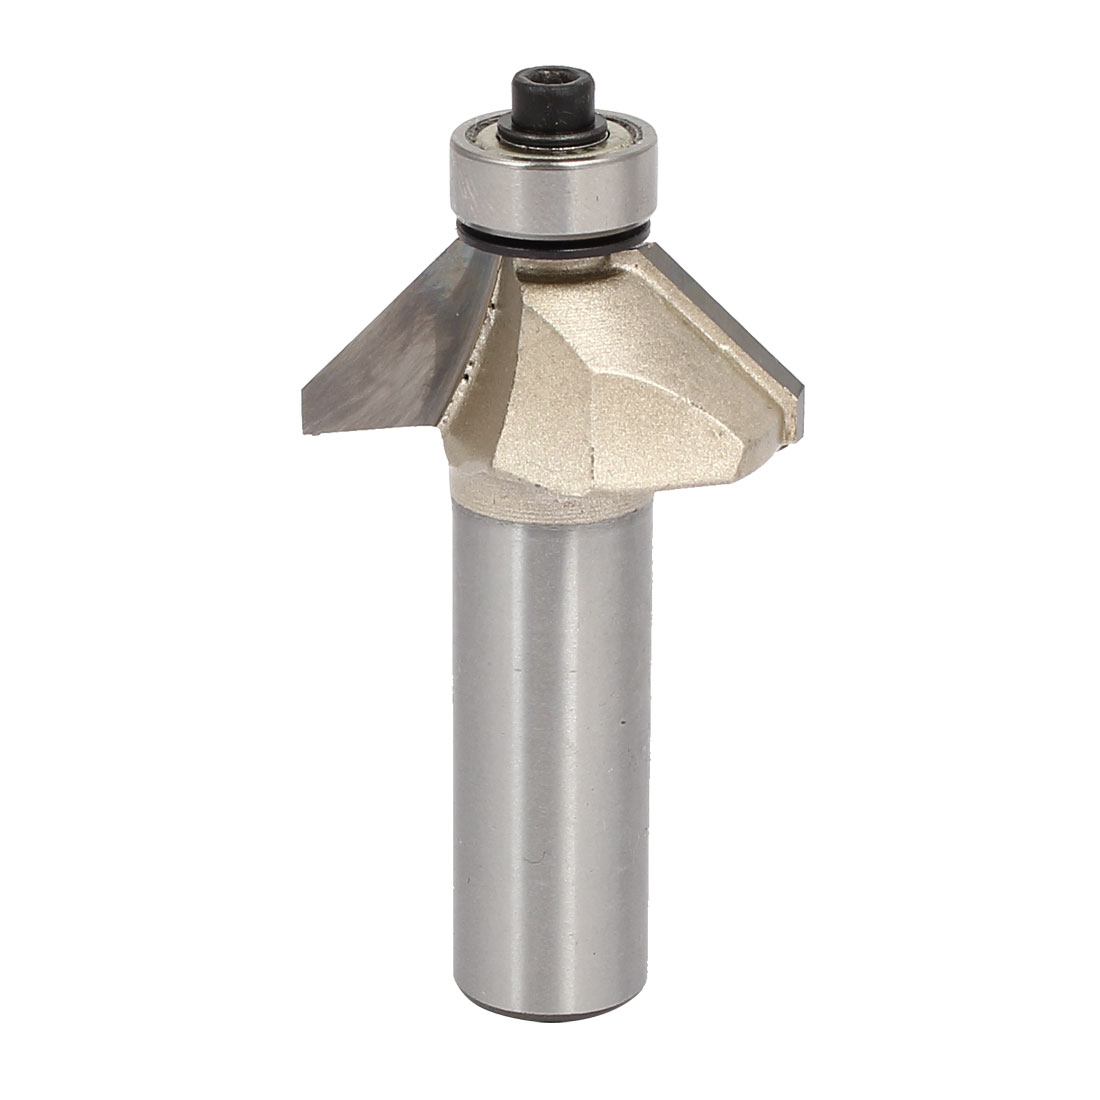 1/2-inch Shank 1/2-inch Cutting Length Ball Bearing 45 Degree Chamfer Router Bit